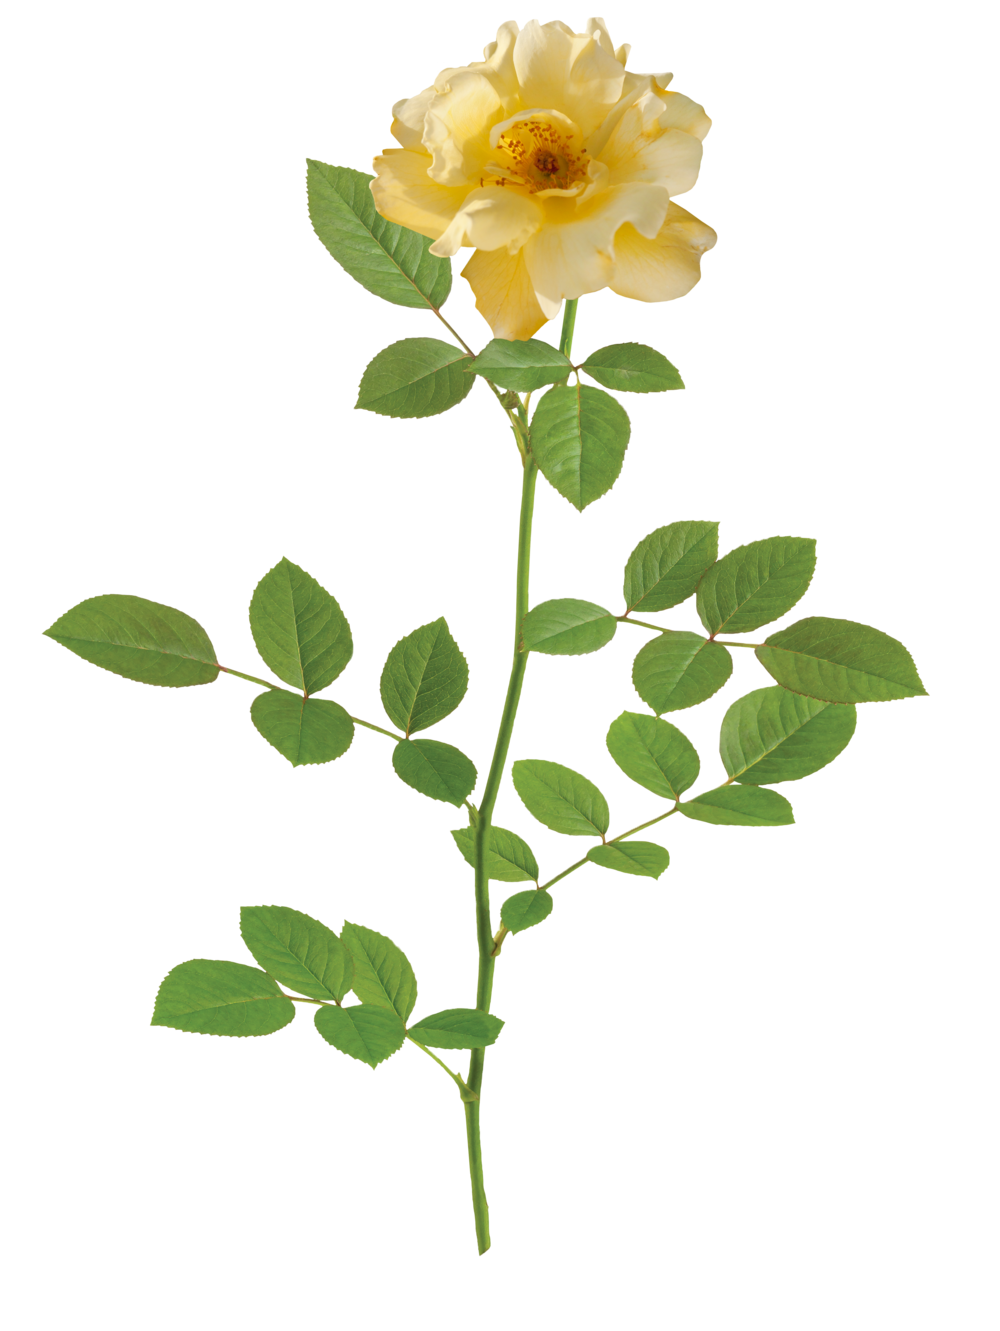 the Lemon Drift® rose - 'Meisentmil' PP 20,635The Lemon Drift® Rose is the newest addition to the Drift® series. It is a perfect yellow groundcover rose. This rose has a very bushy, compact, and rounded habit. It is only available for sales in the West.Zones: 4–11   |   Exposure: Full sun   |   Habit: 1½' h x 2' w